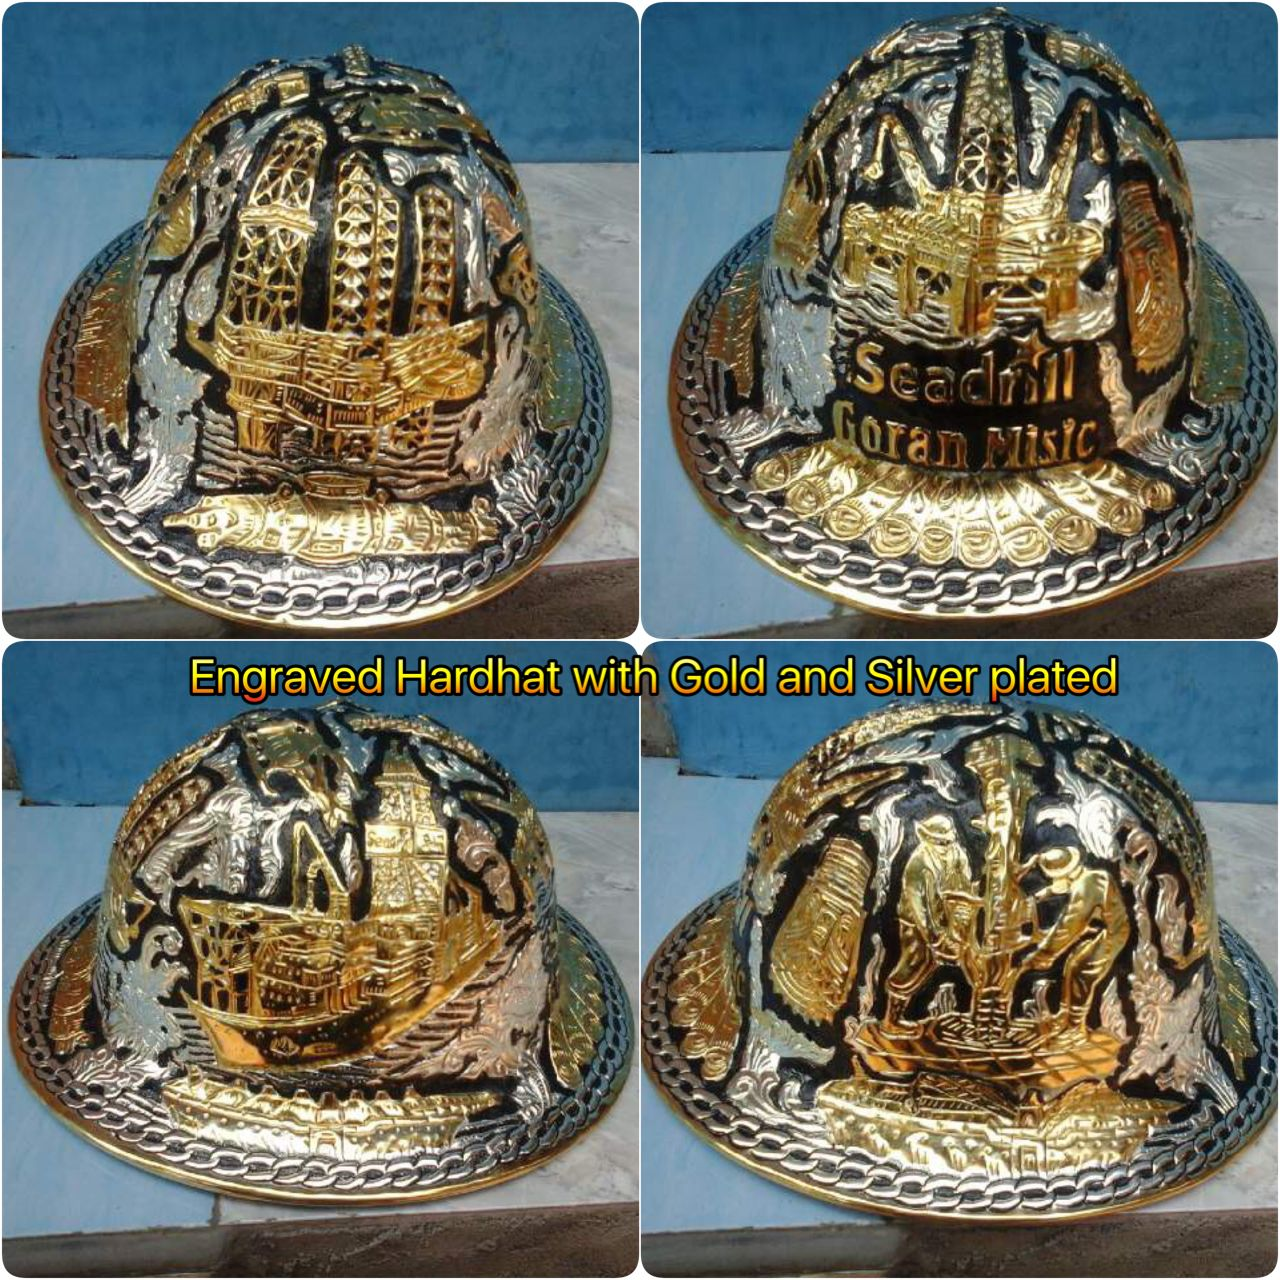 Pin By Elvino Pongsapan On Oilfield Hardhat Souvenirs Hard Hats My Lovely Wife Oil And Gas